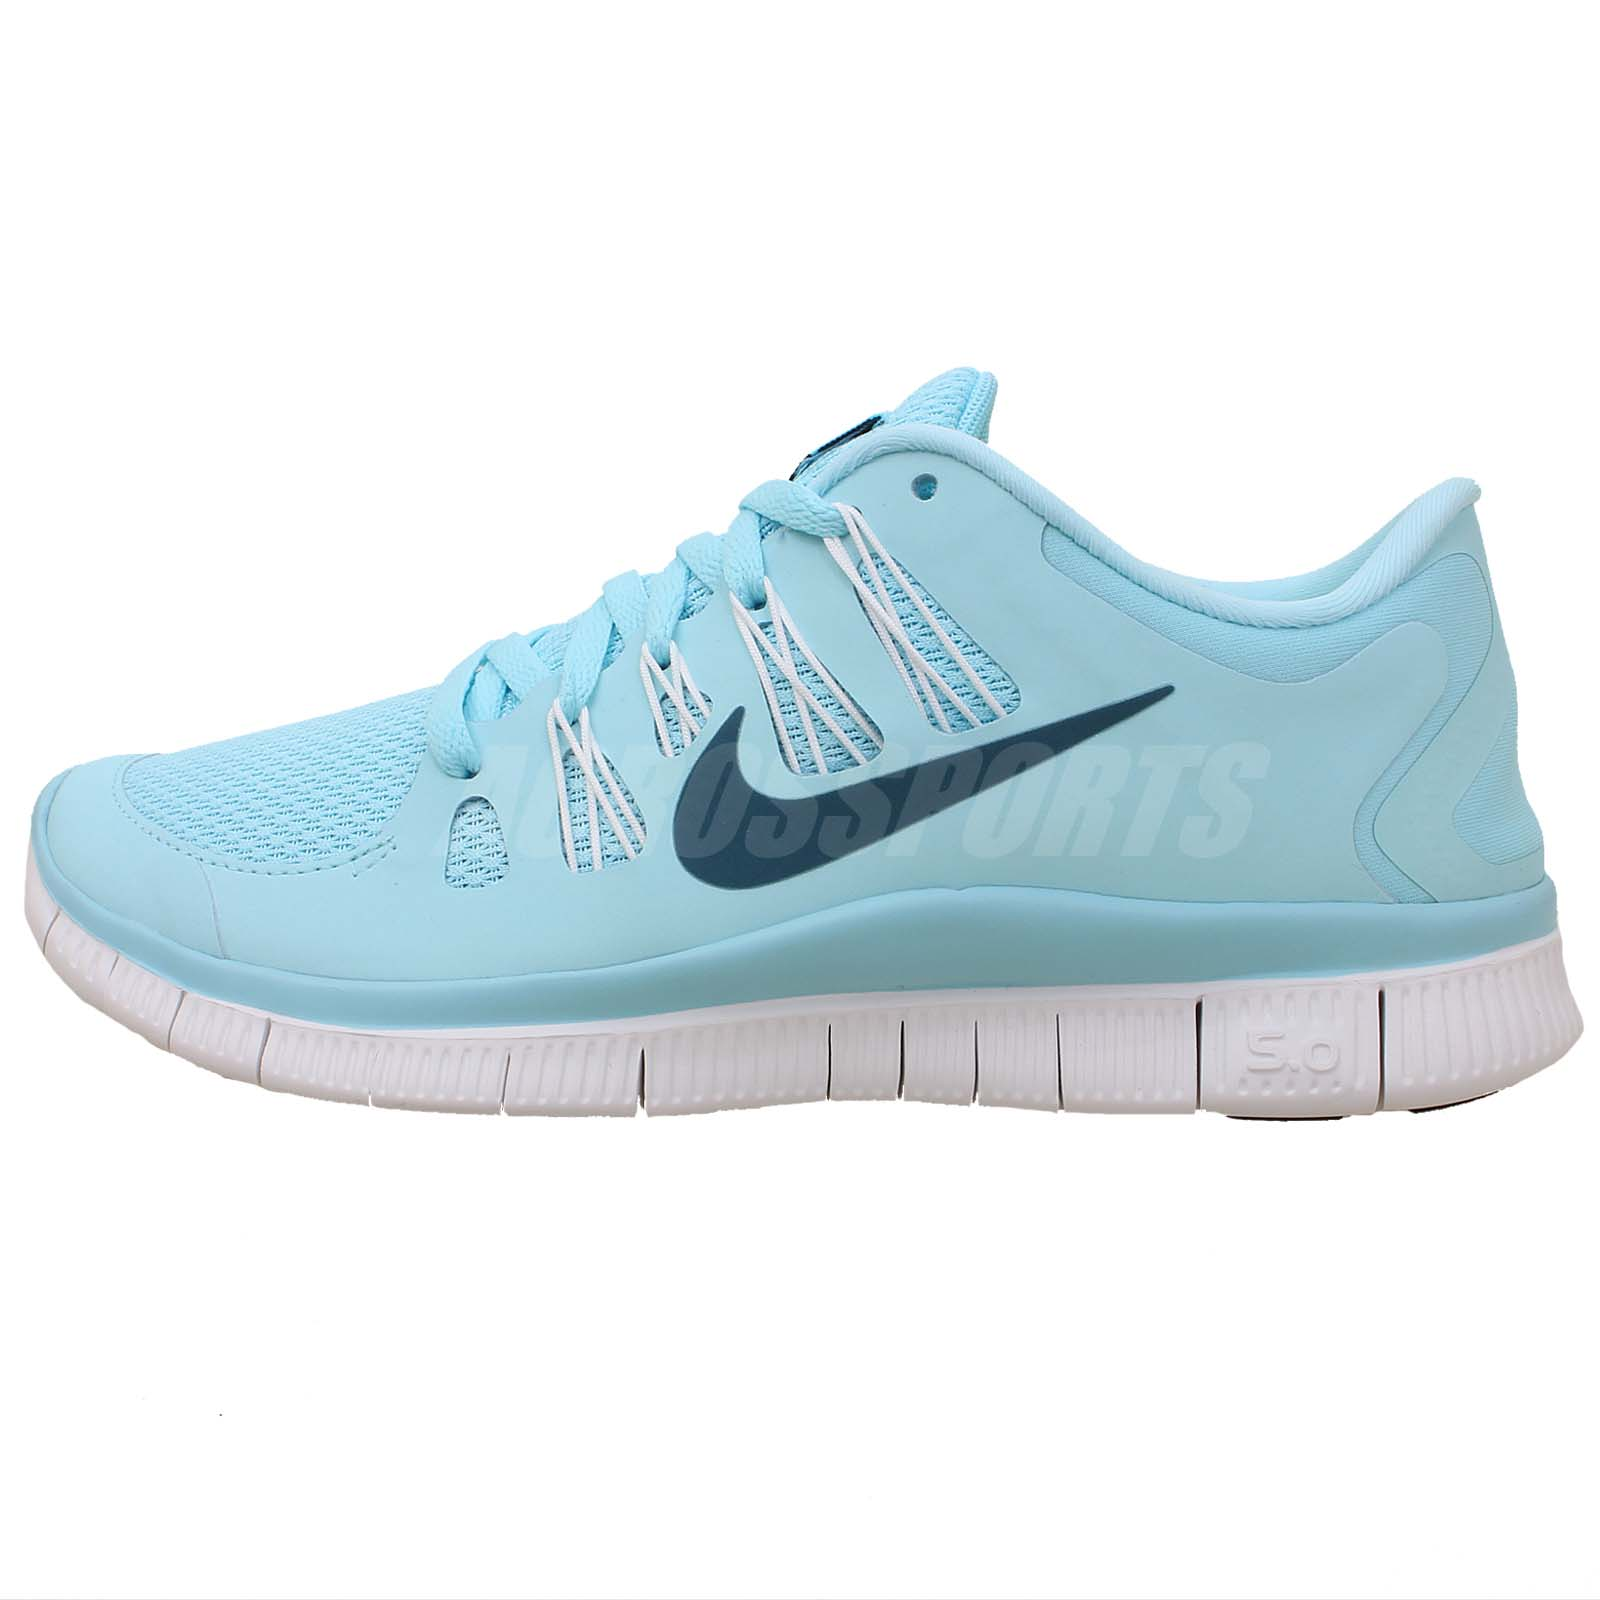 Nike Wmns Free 5.0 Blue White 2014 Womens Running Shoes ...